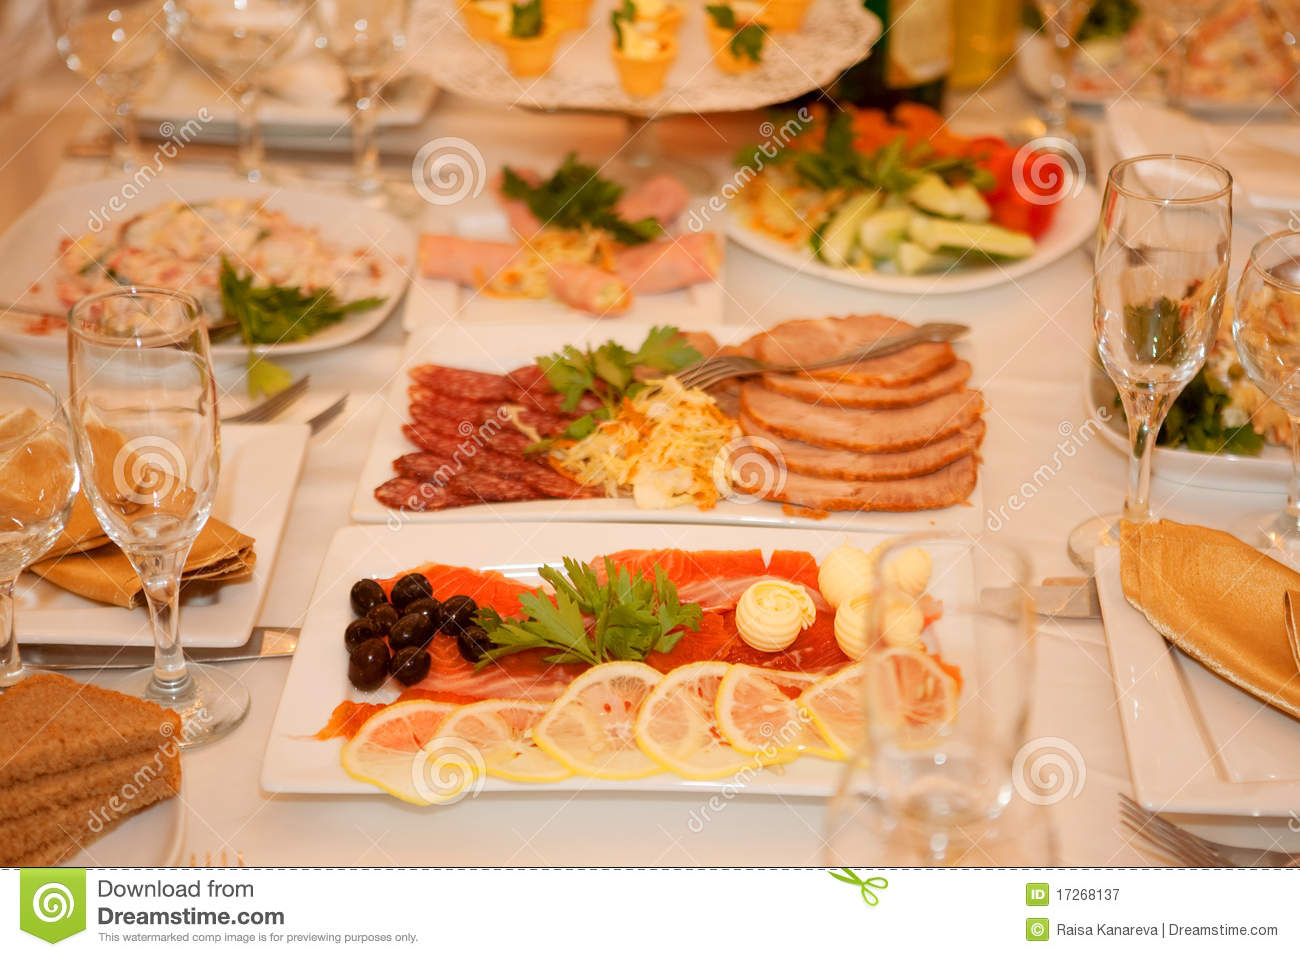 Banquet table with food stock image. Image of meal, celebration ...